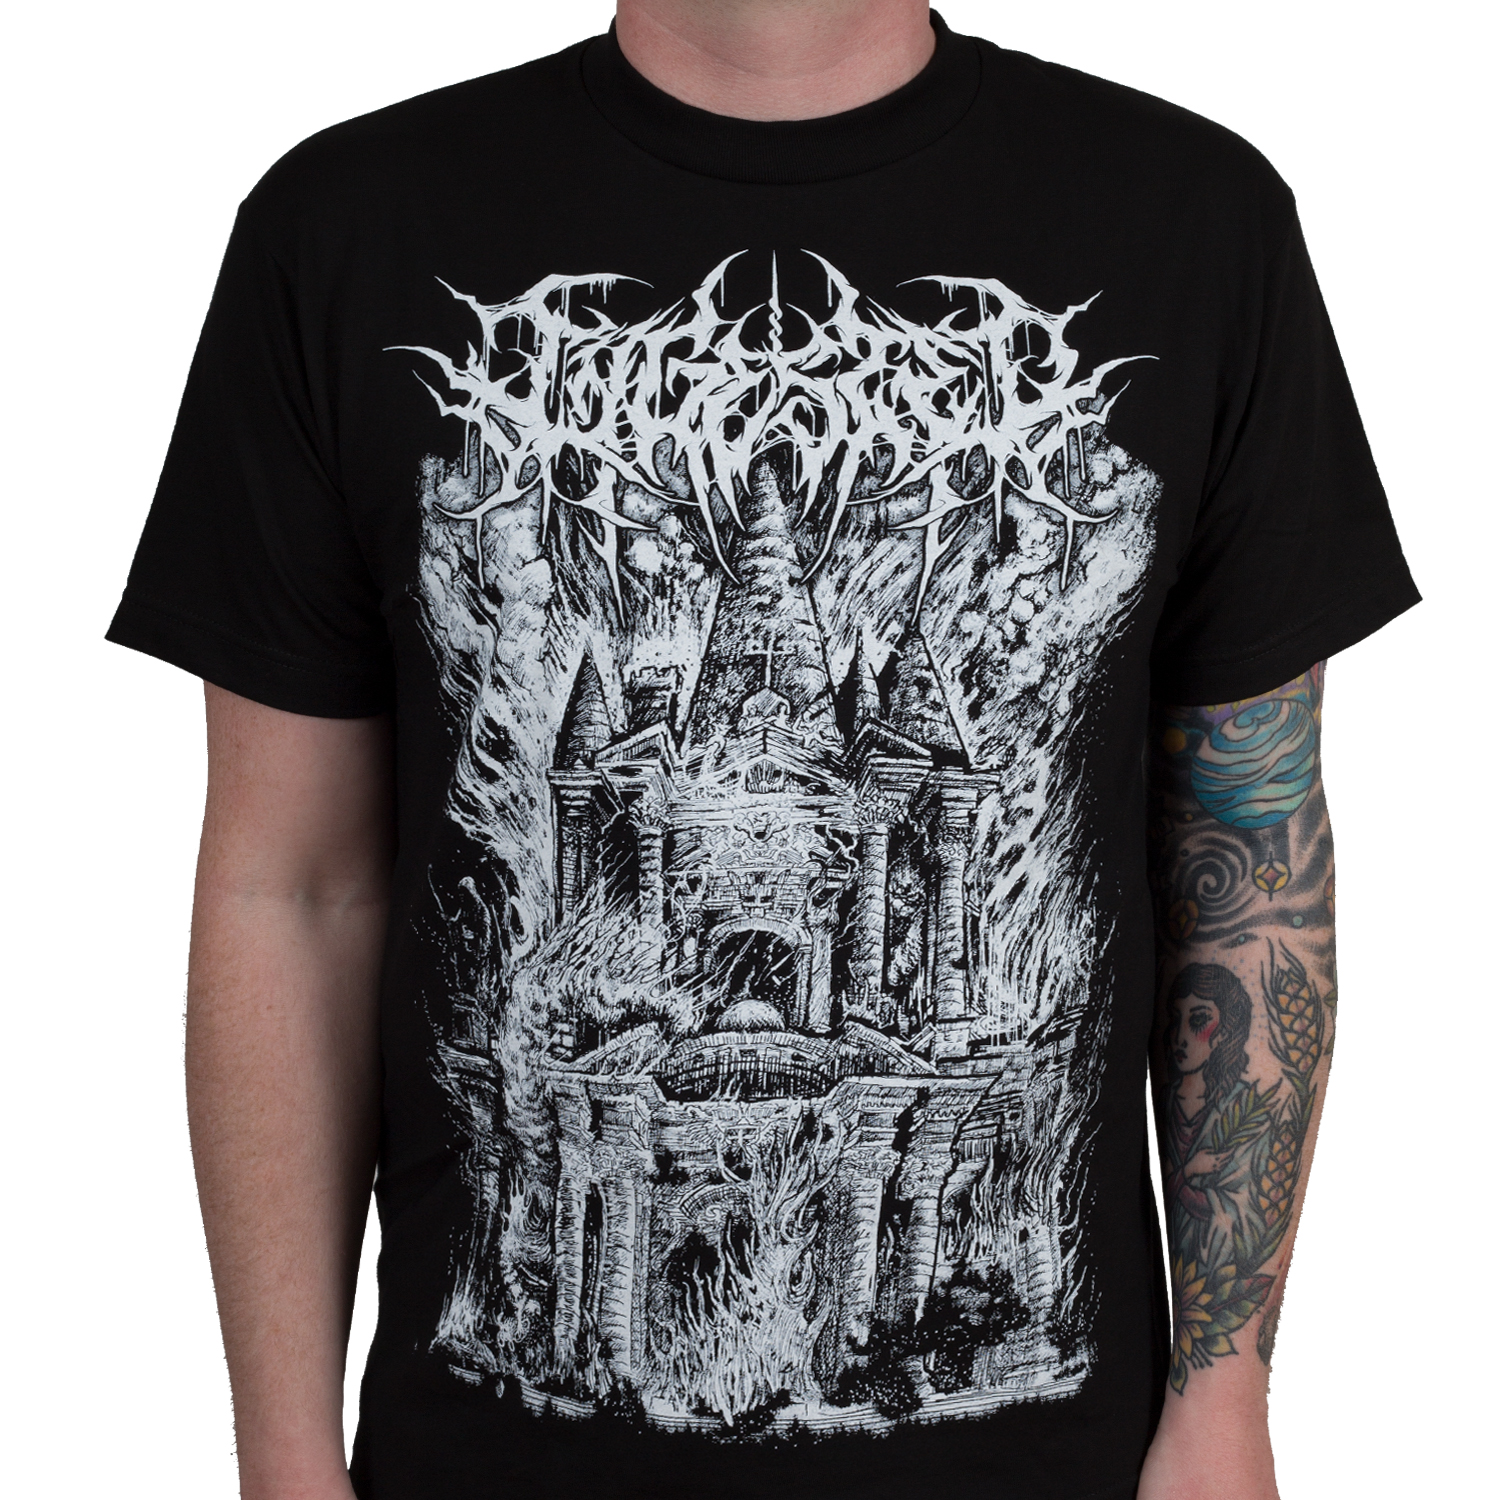 ingested slam metal t shirt indiemerchstore. Black Bedroom Furniture Sets. Home Design Ideas